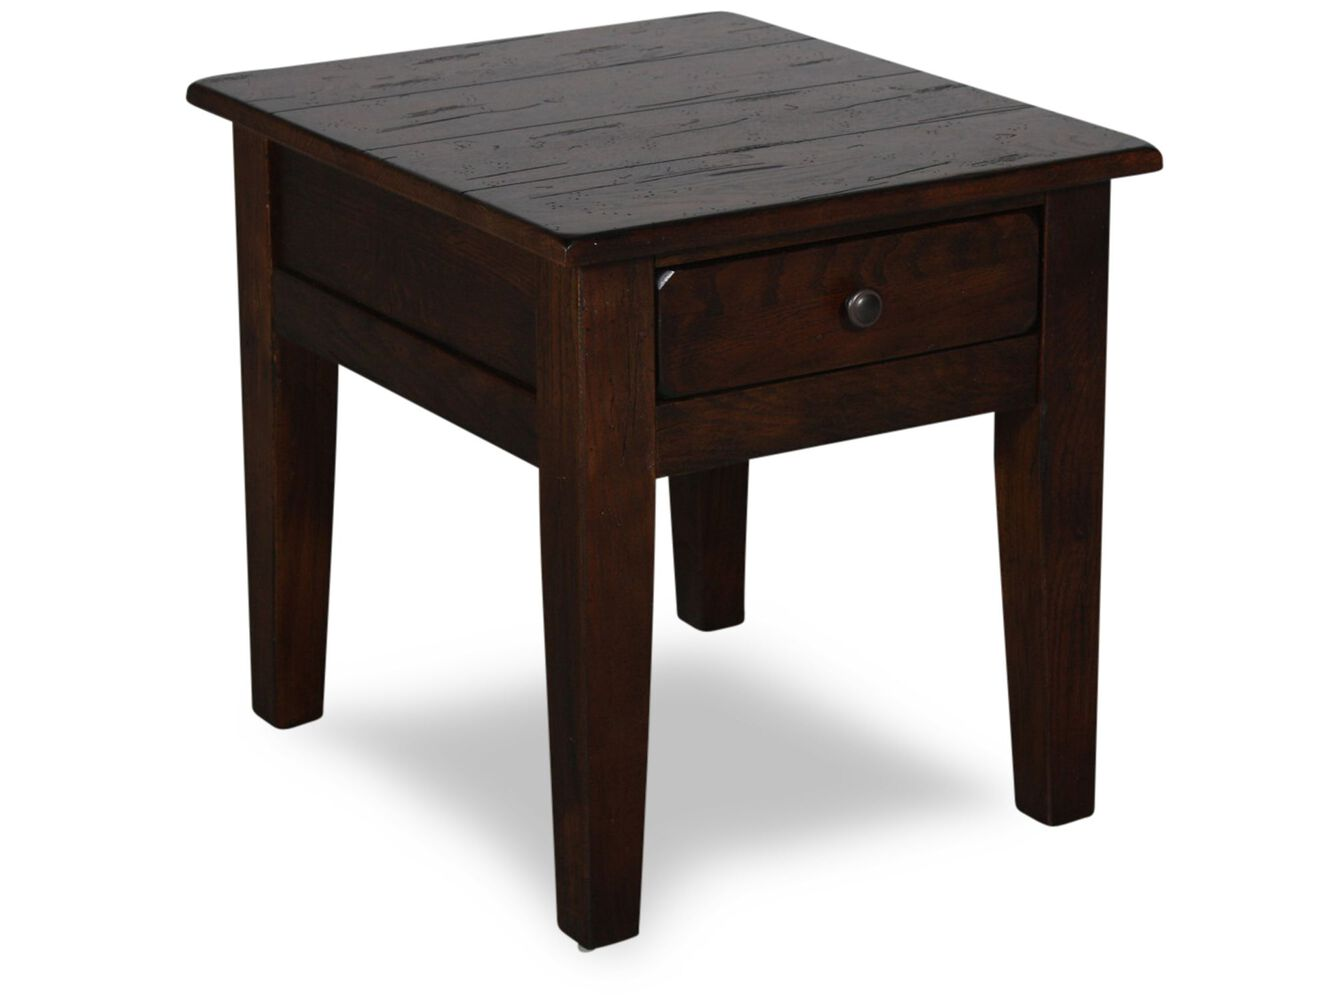 Textured Square Country End Table In Dark Oak Mathis Brothers Furniture